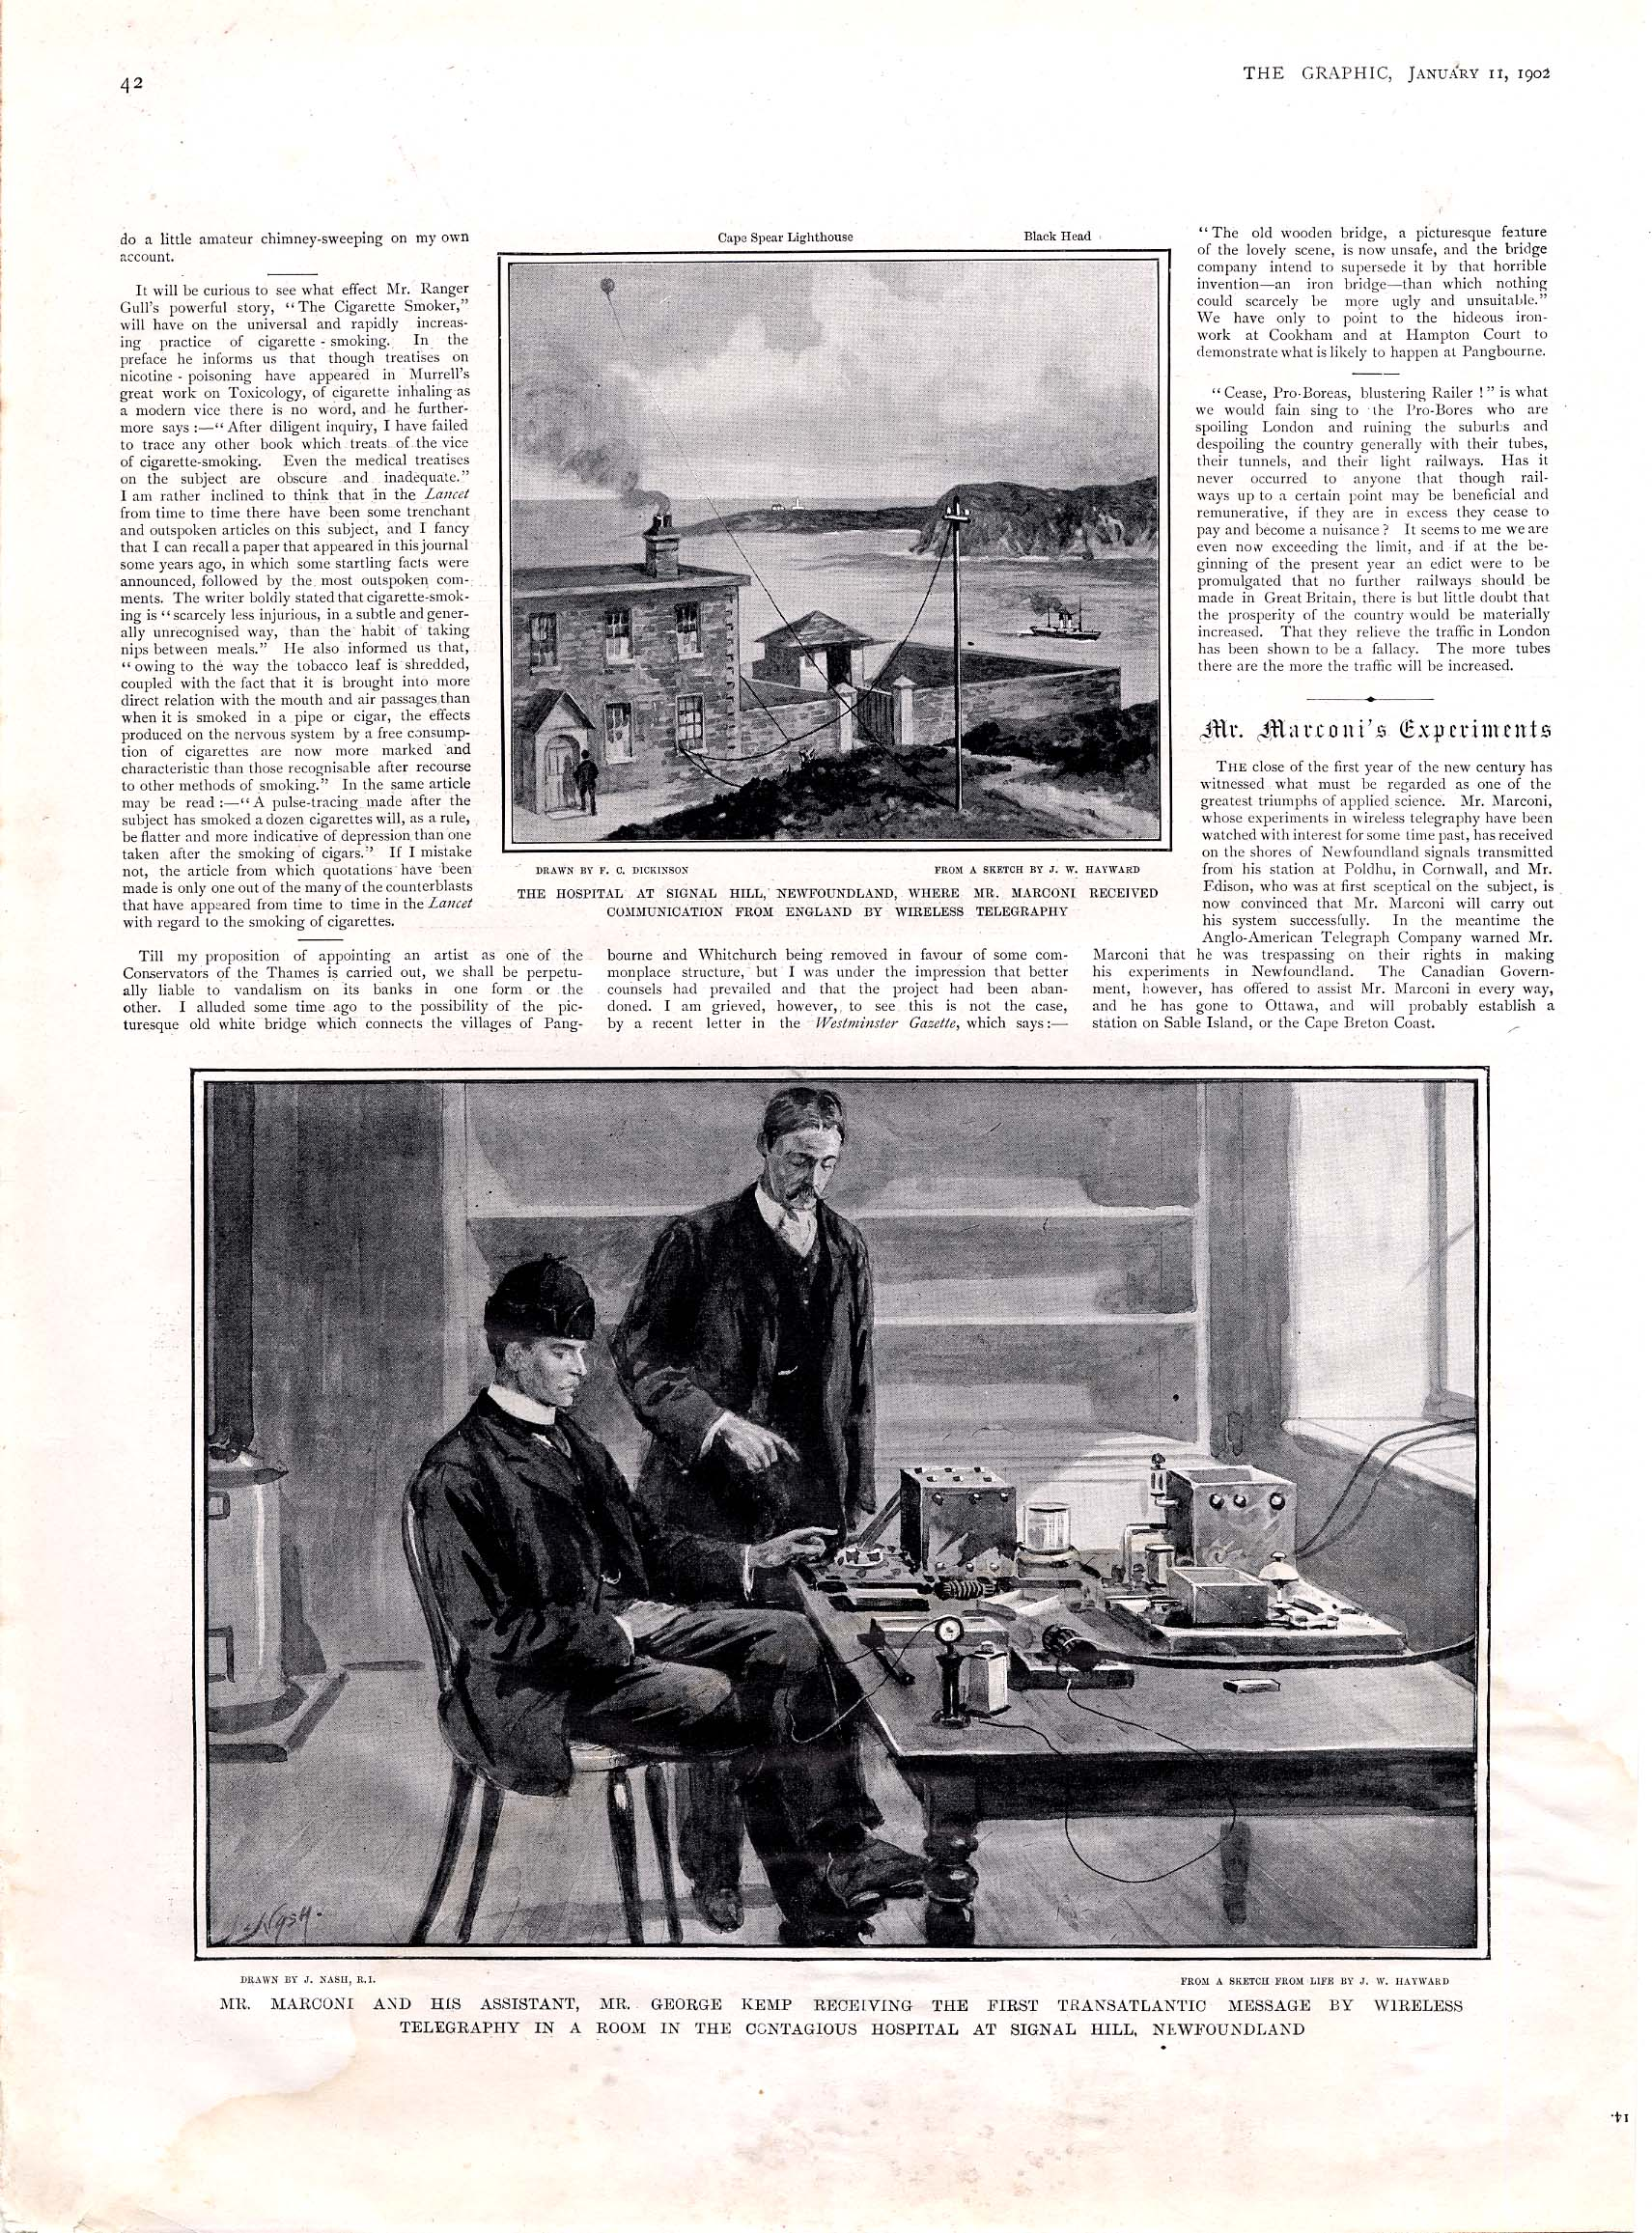 A Page from The Graphic, 11 January 1902, Illustrating Marconi's First Trans-Atlantic Signal